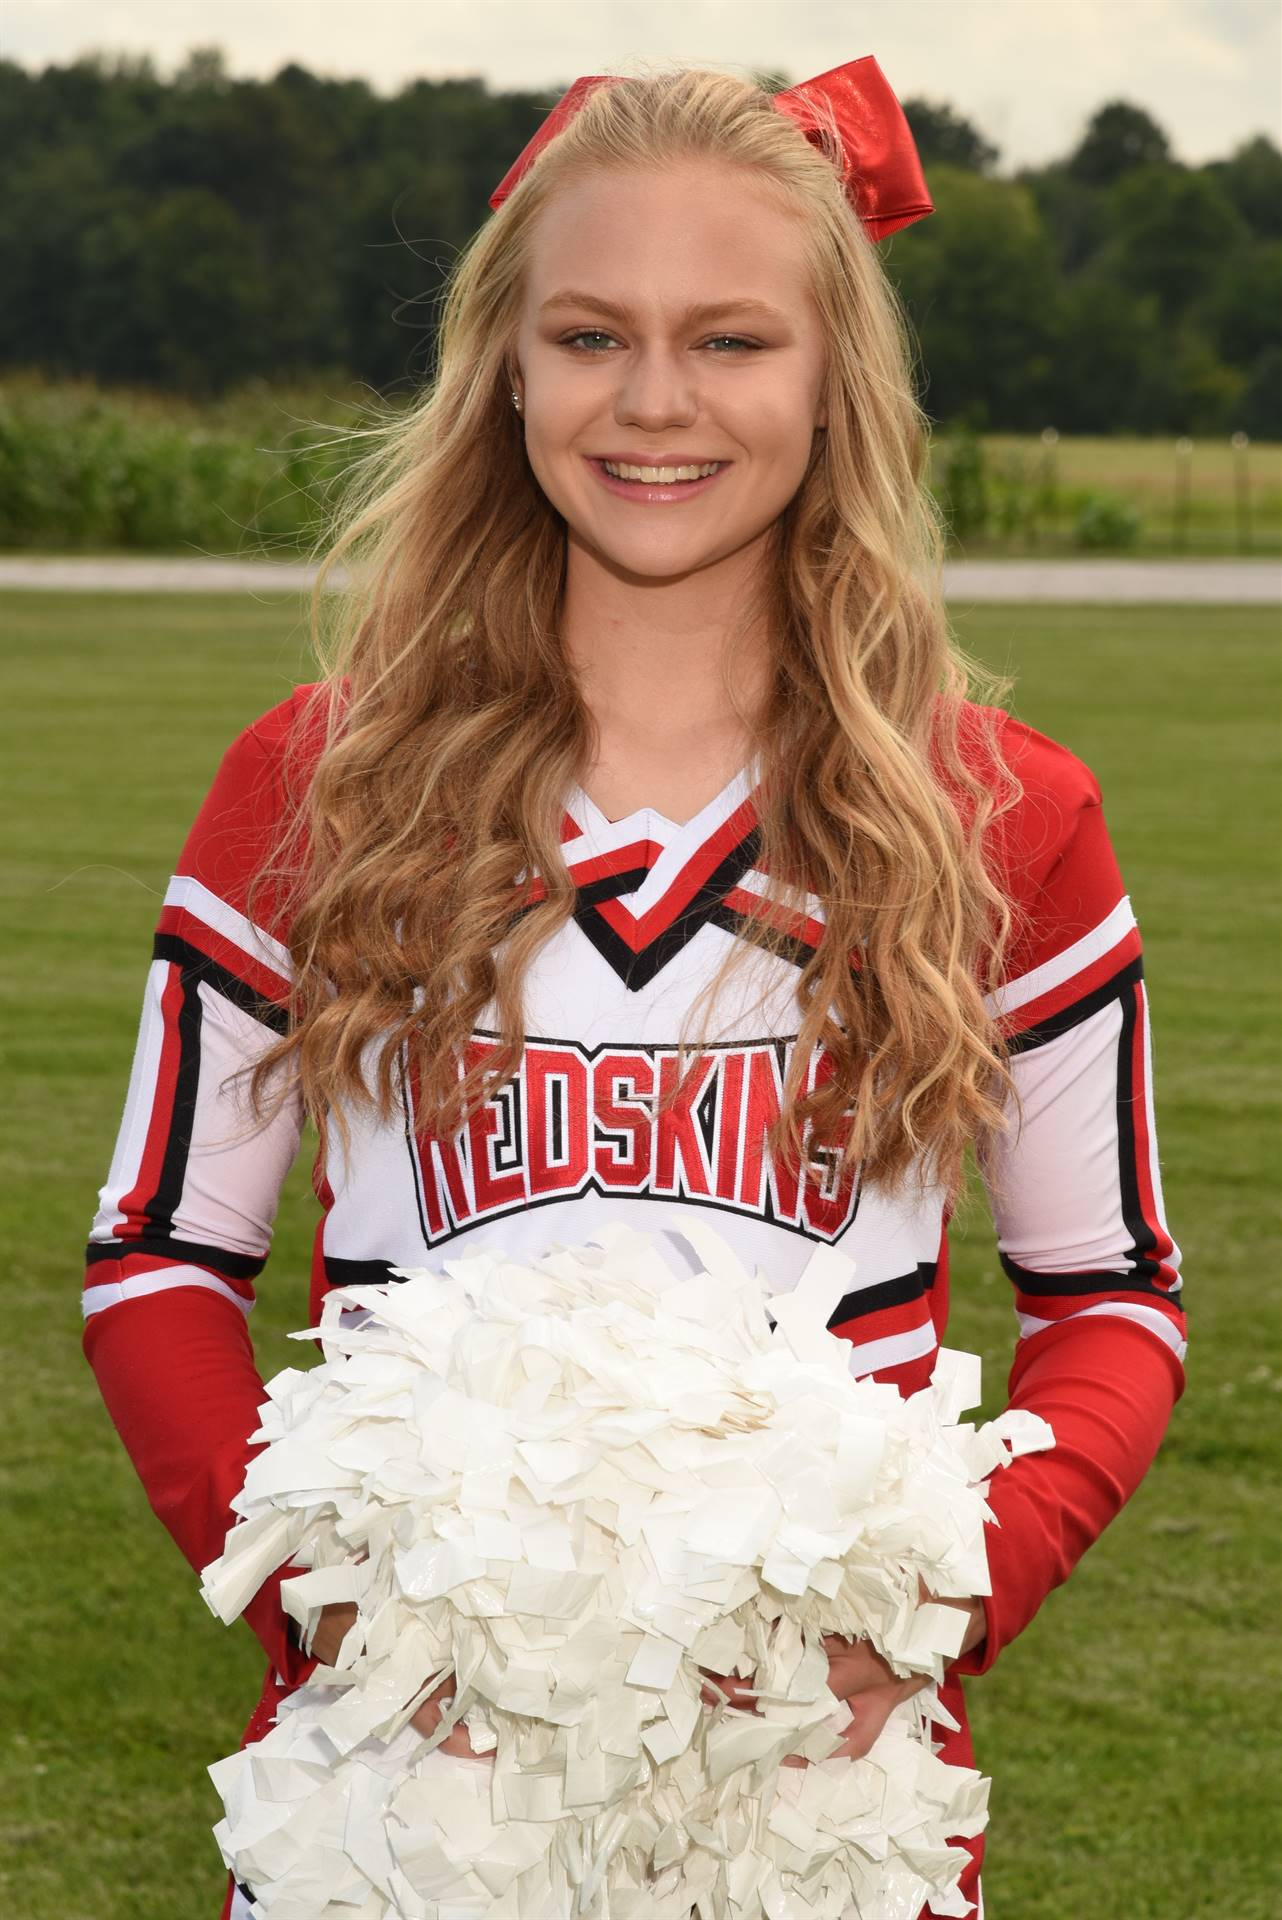 Senior Cheerleading Picture - Ashton Wolfe